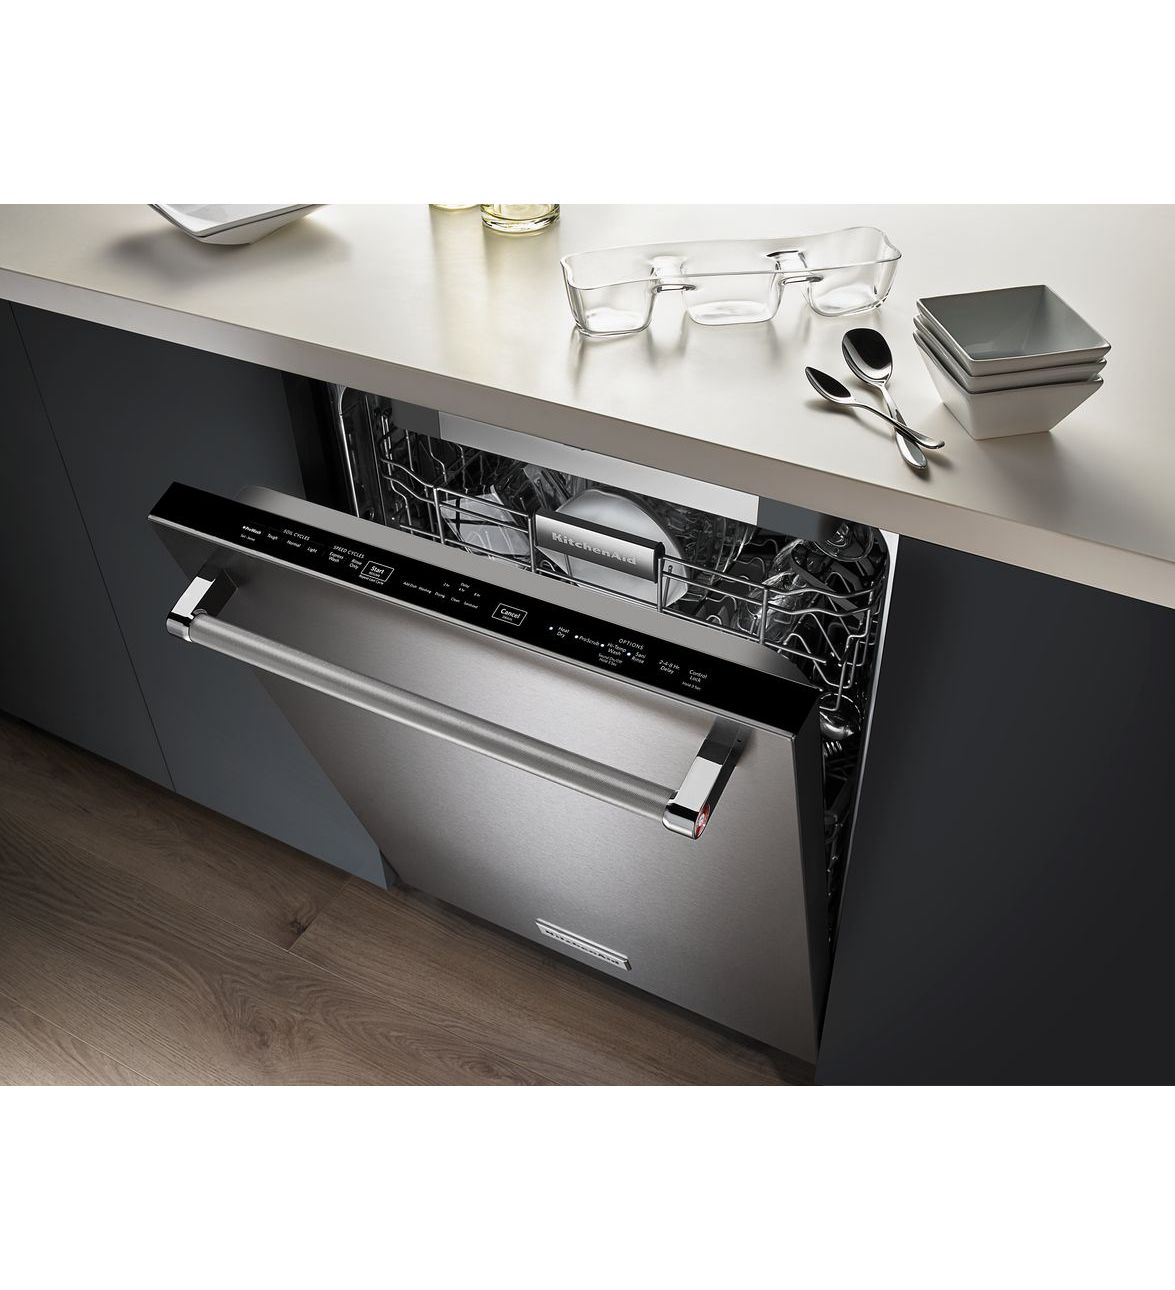 Uncategorized Home Hardware Kitchen Appliances dishwasher with wellington home hardware with